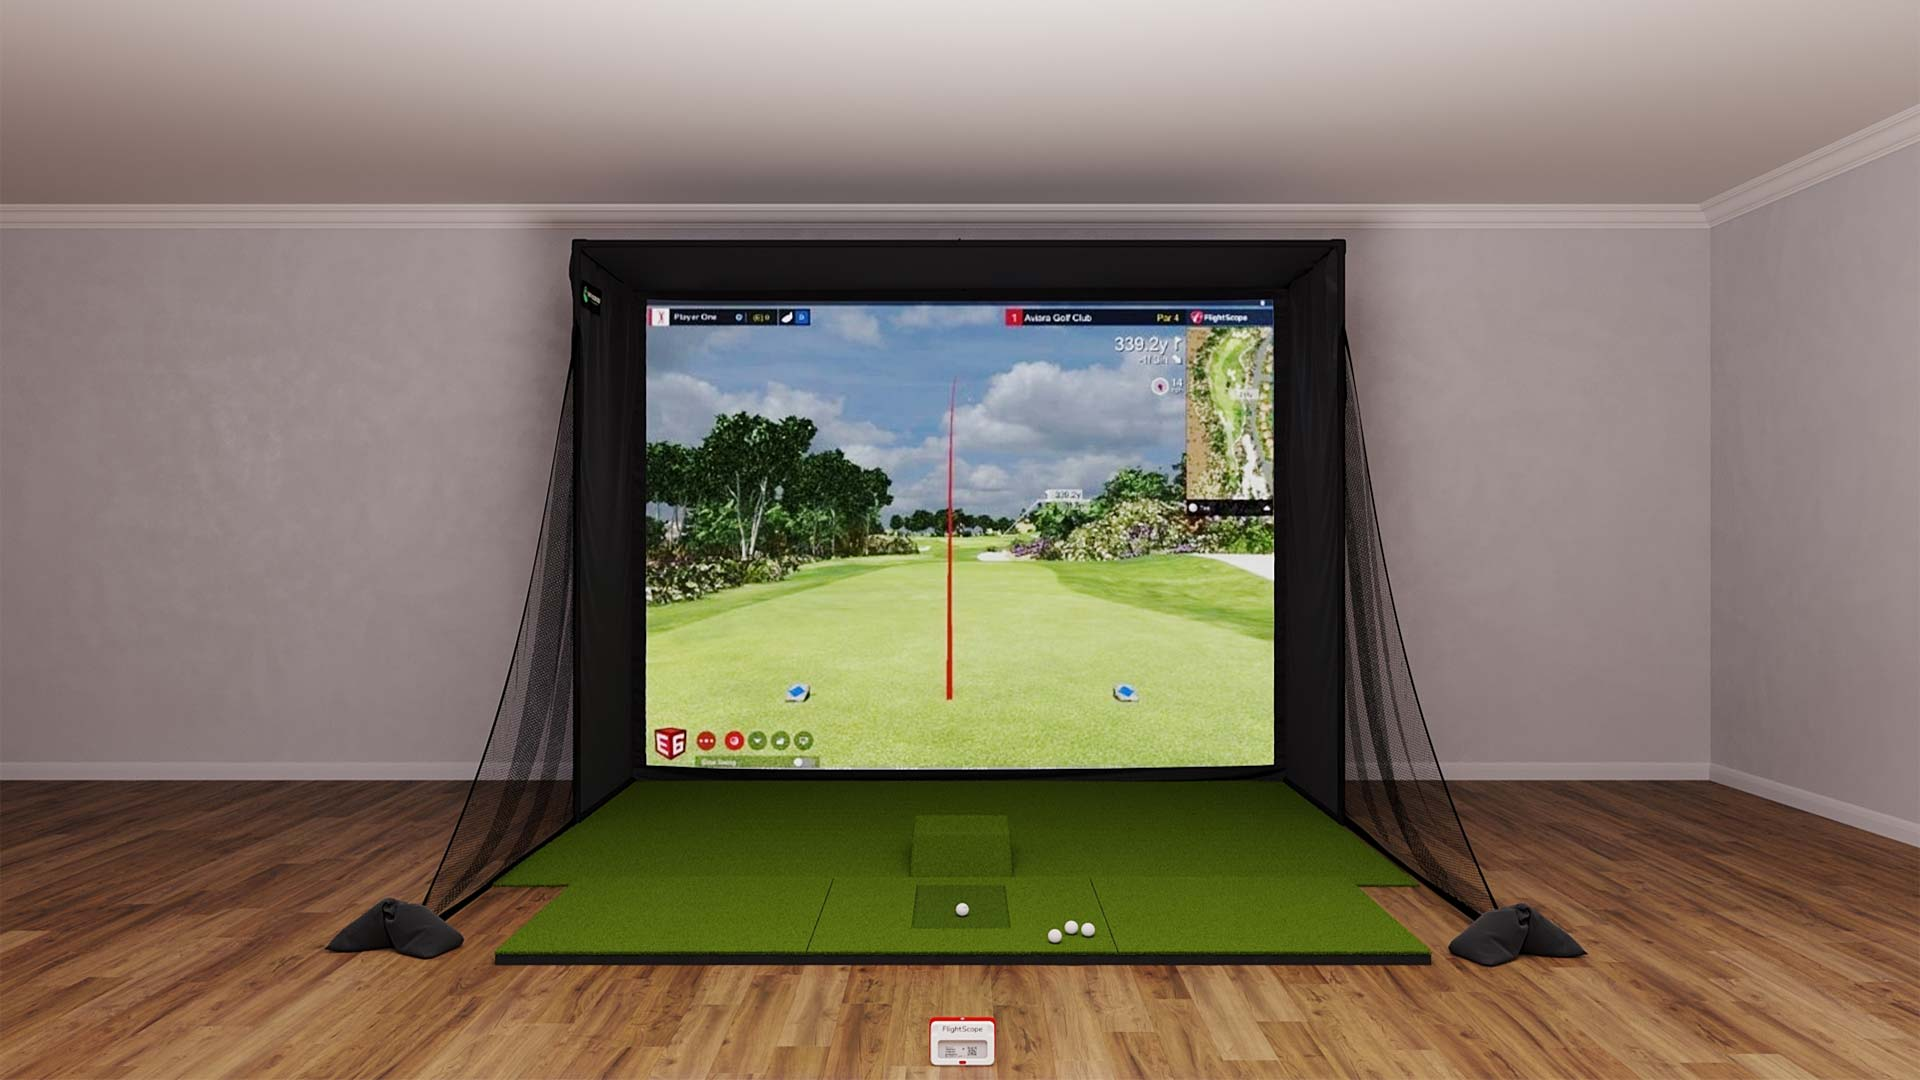 SIG12 Mevo Plus Golf Simulator